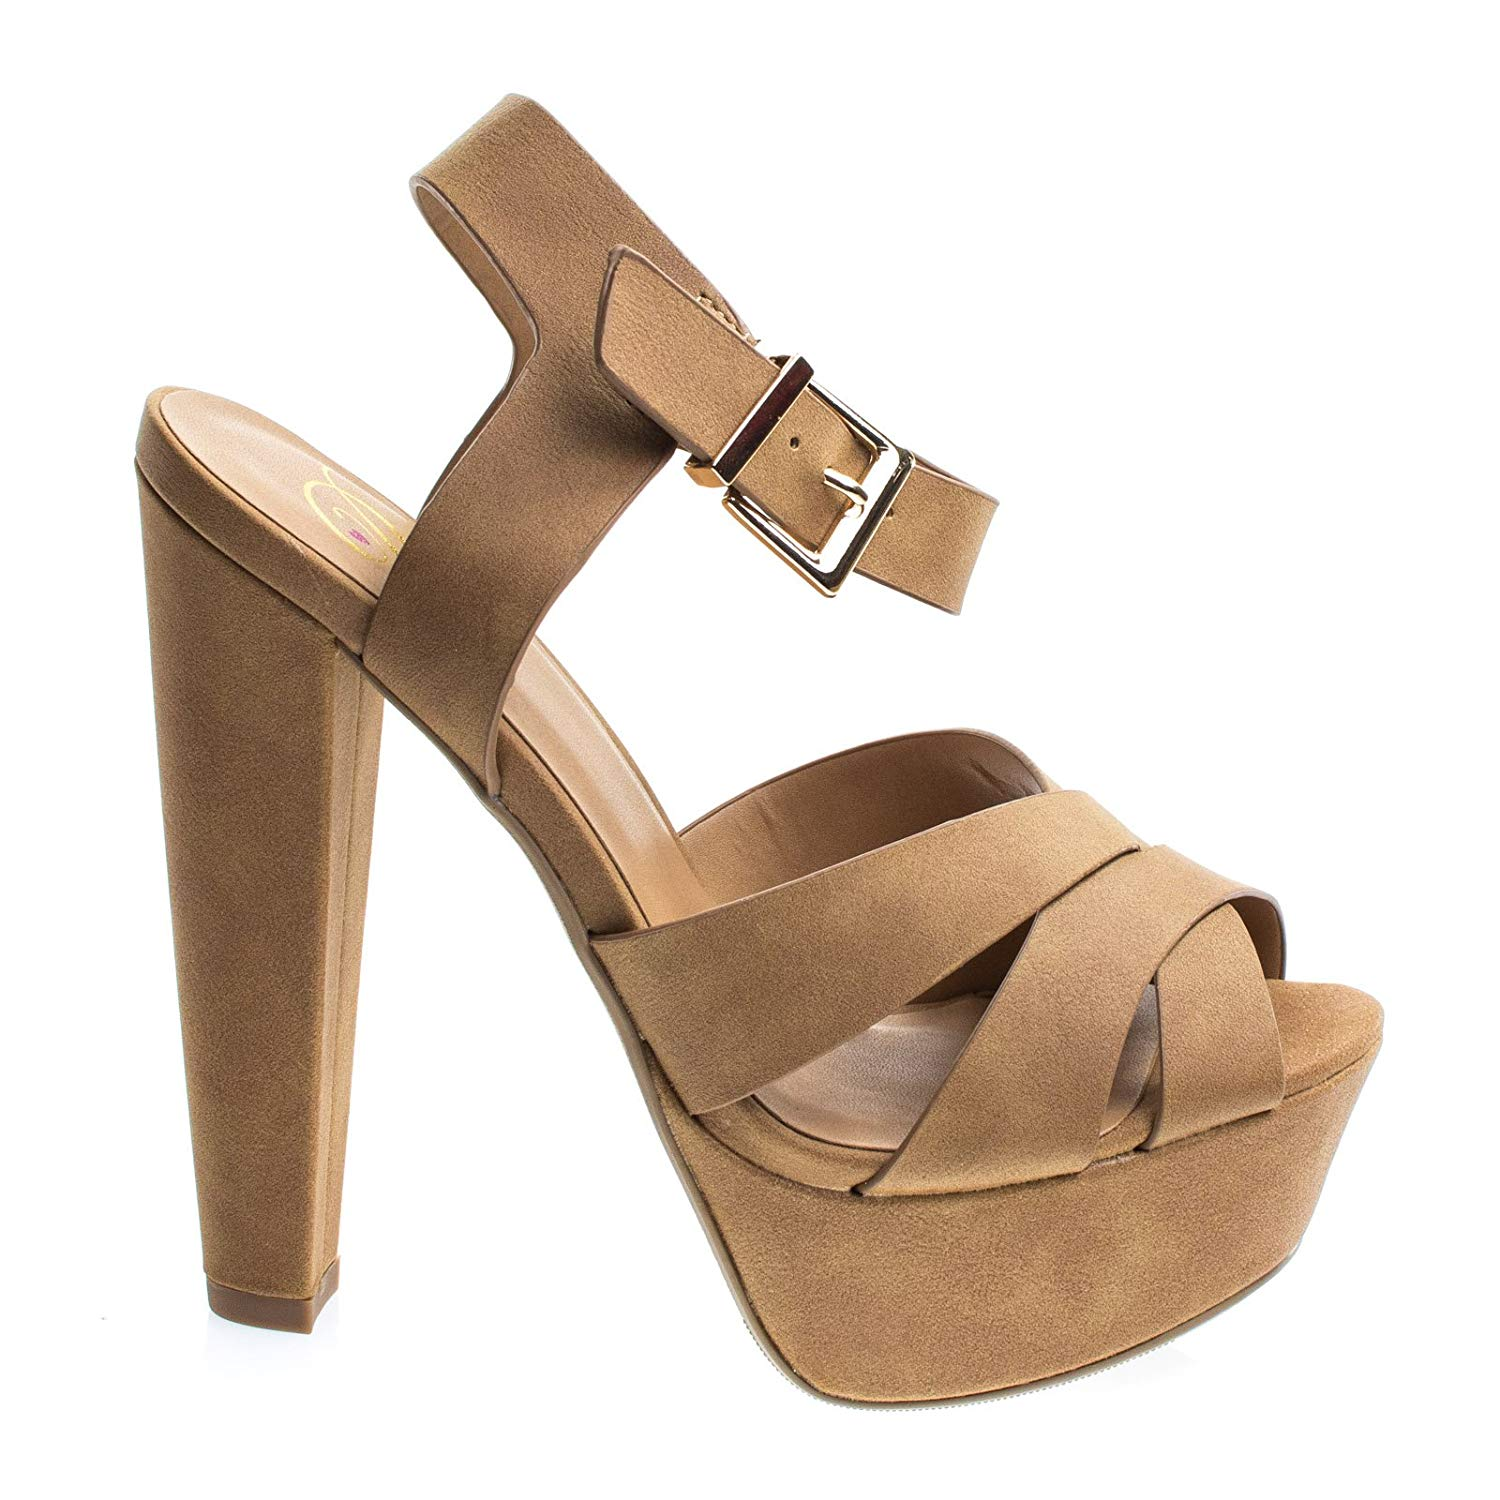 a13cd3d41fc Get Quotations · Delicious Towering High Platform Block Heel Sandal